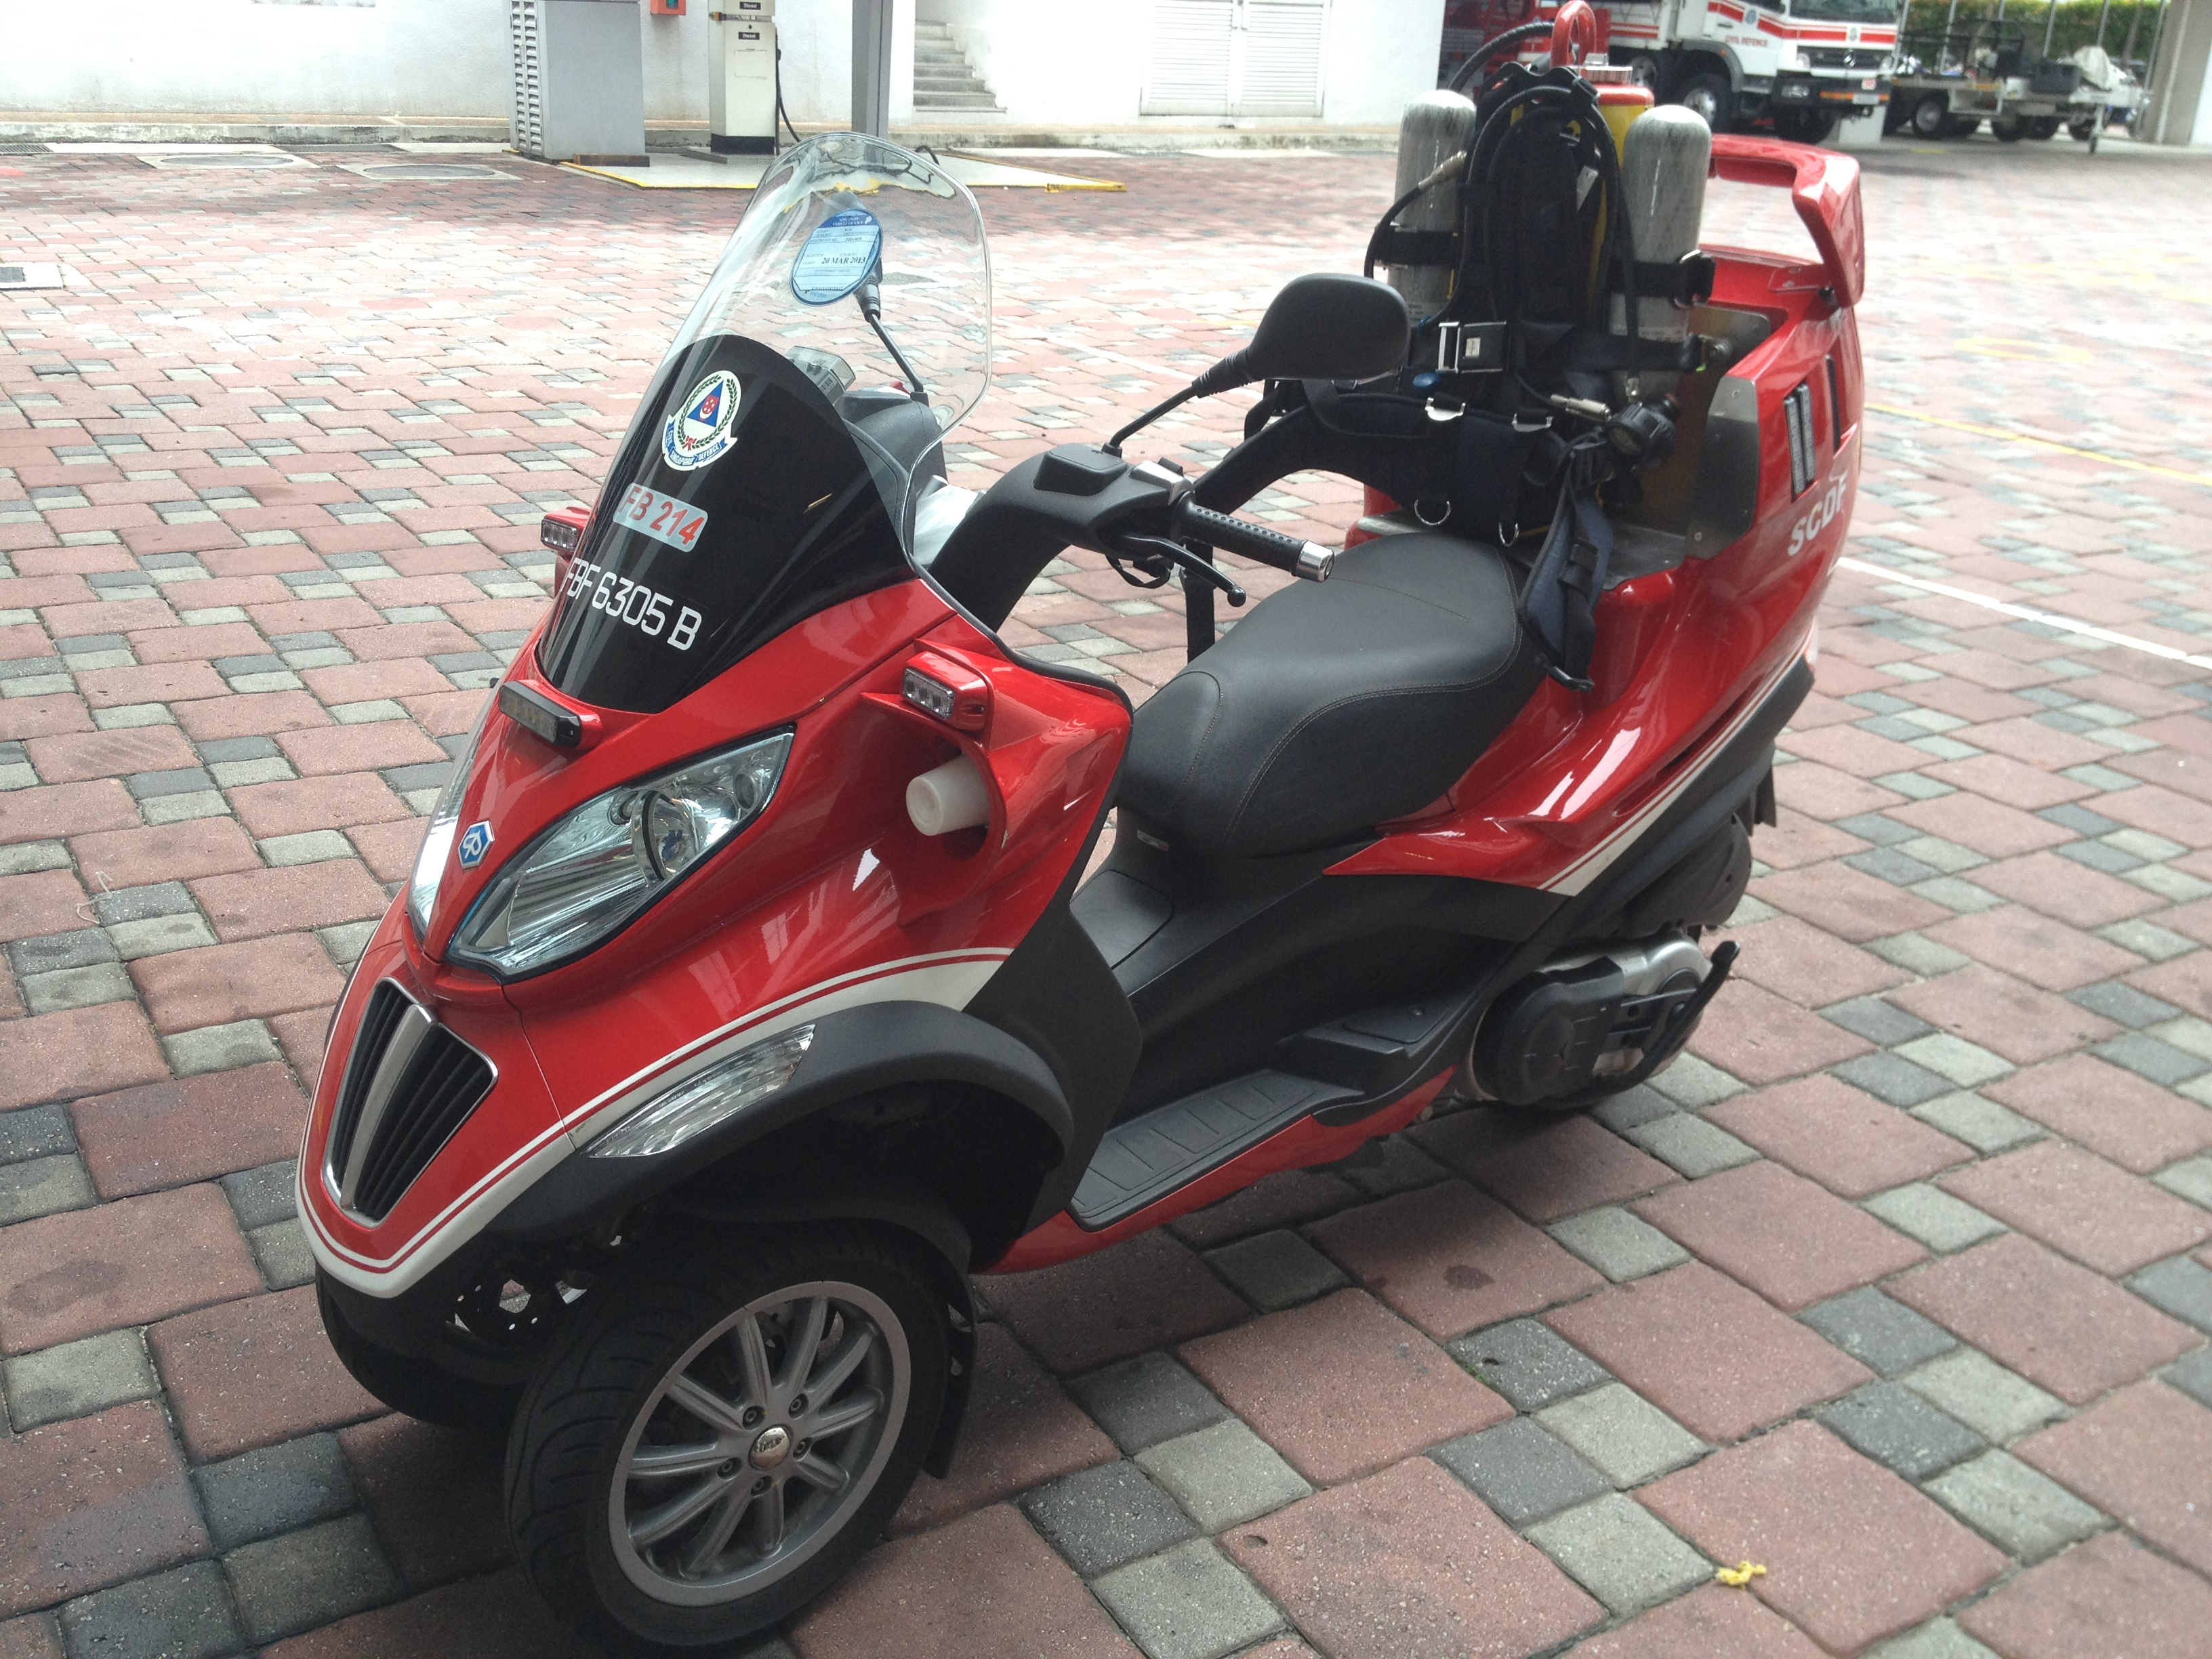 Piaggio MP3 125 Hybrid 2010 images #120247